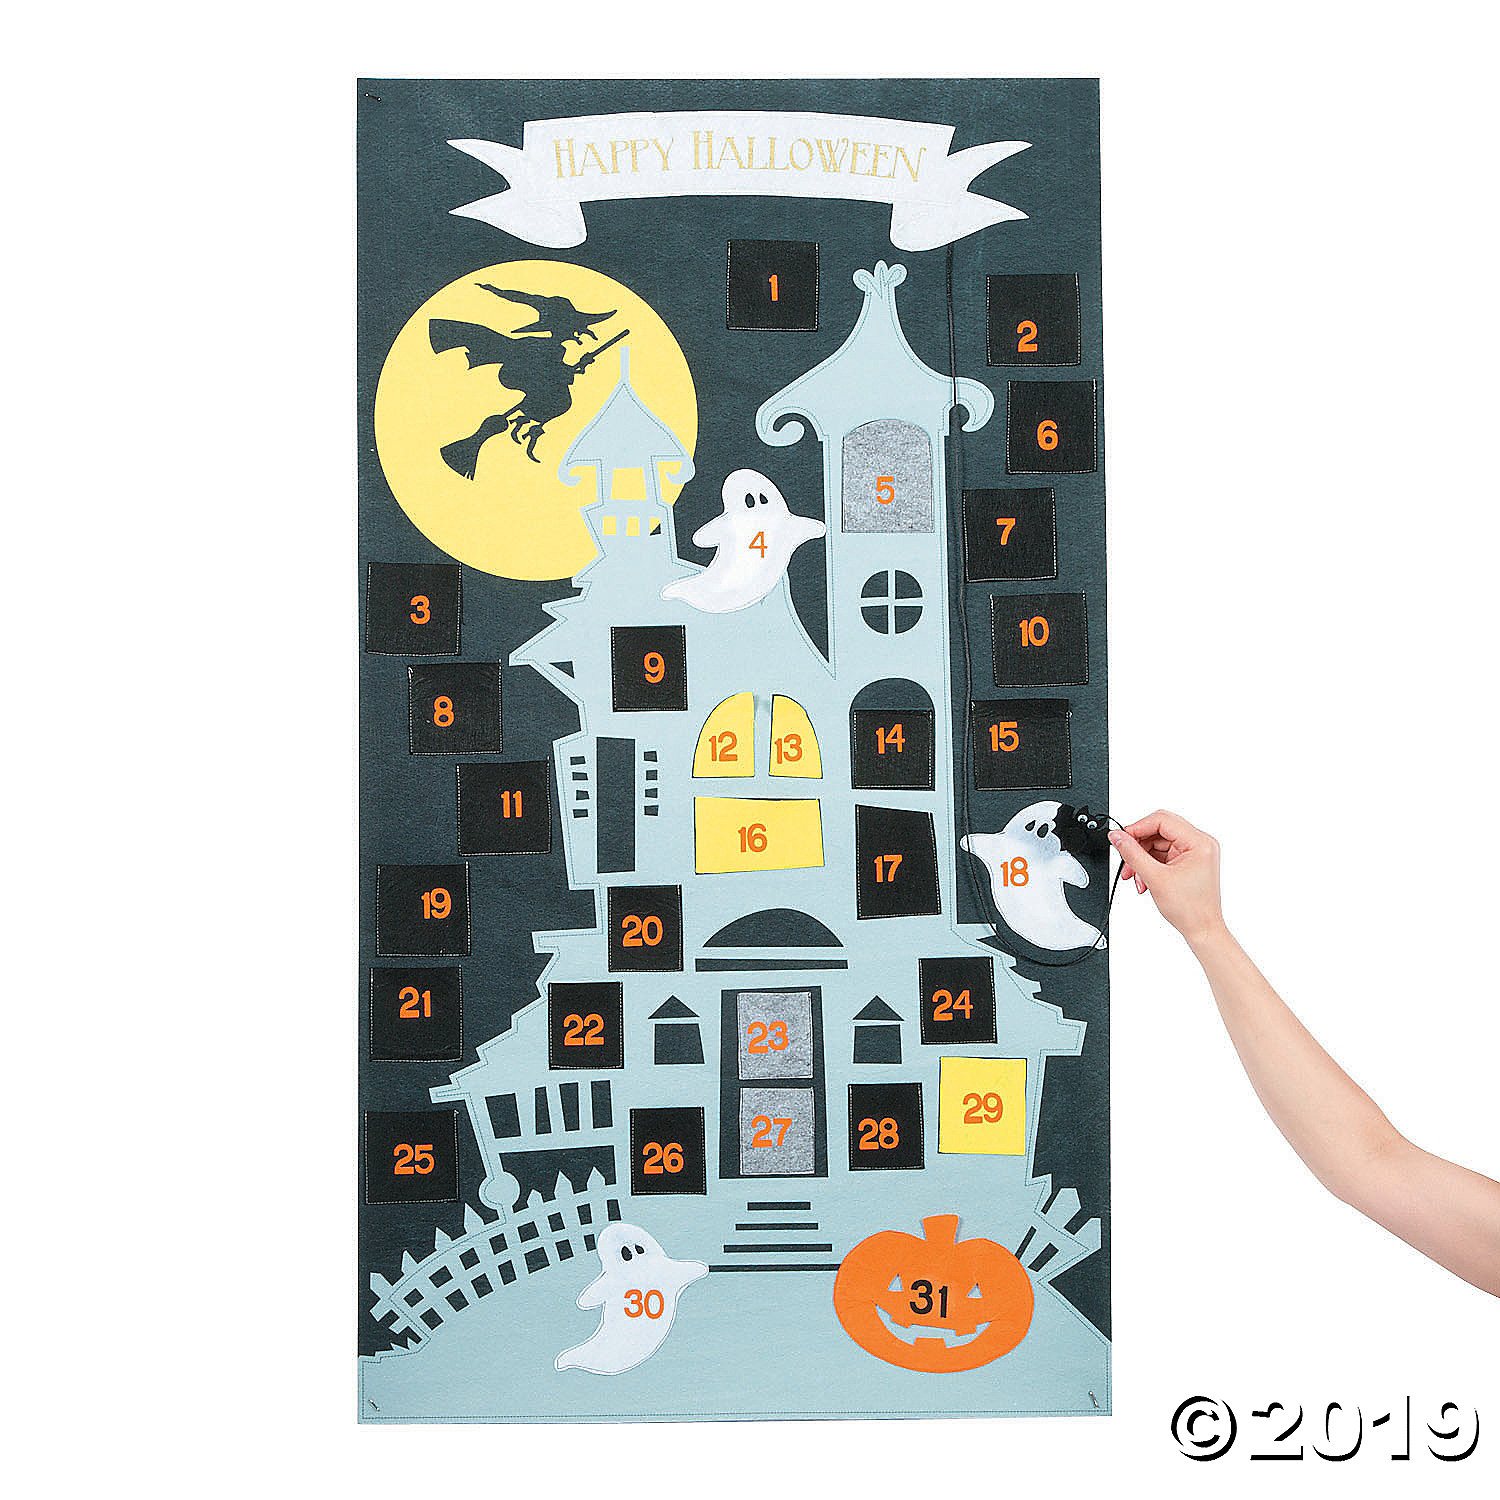 black and blue haunted House advent calendar with woman adding something to one of the pockets